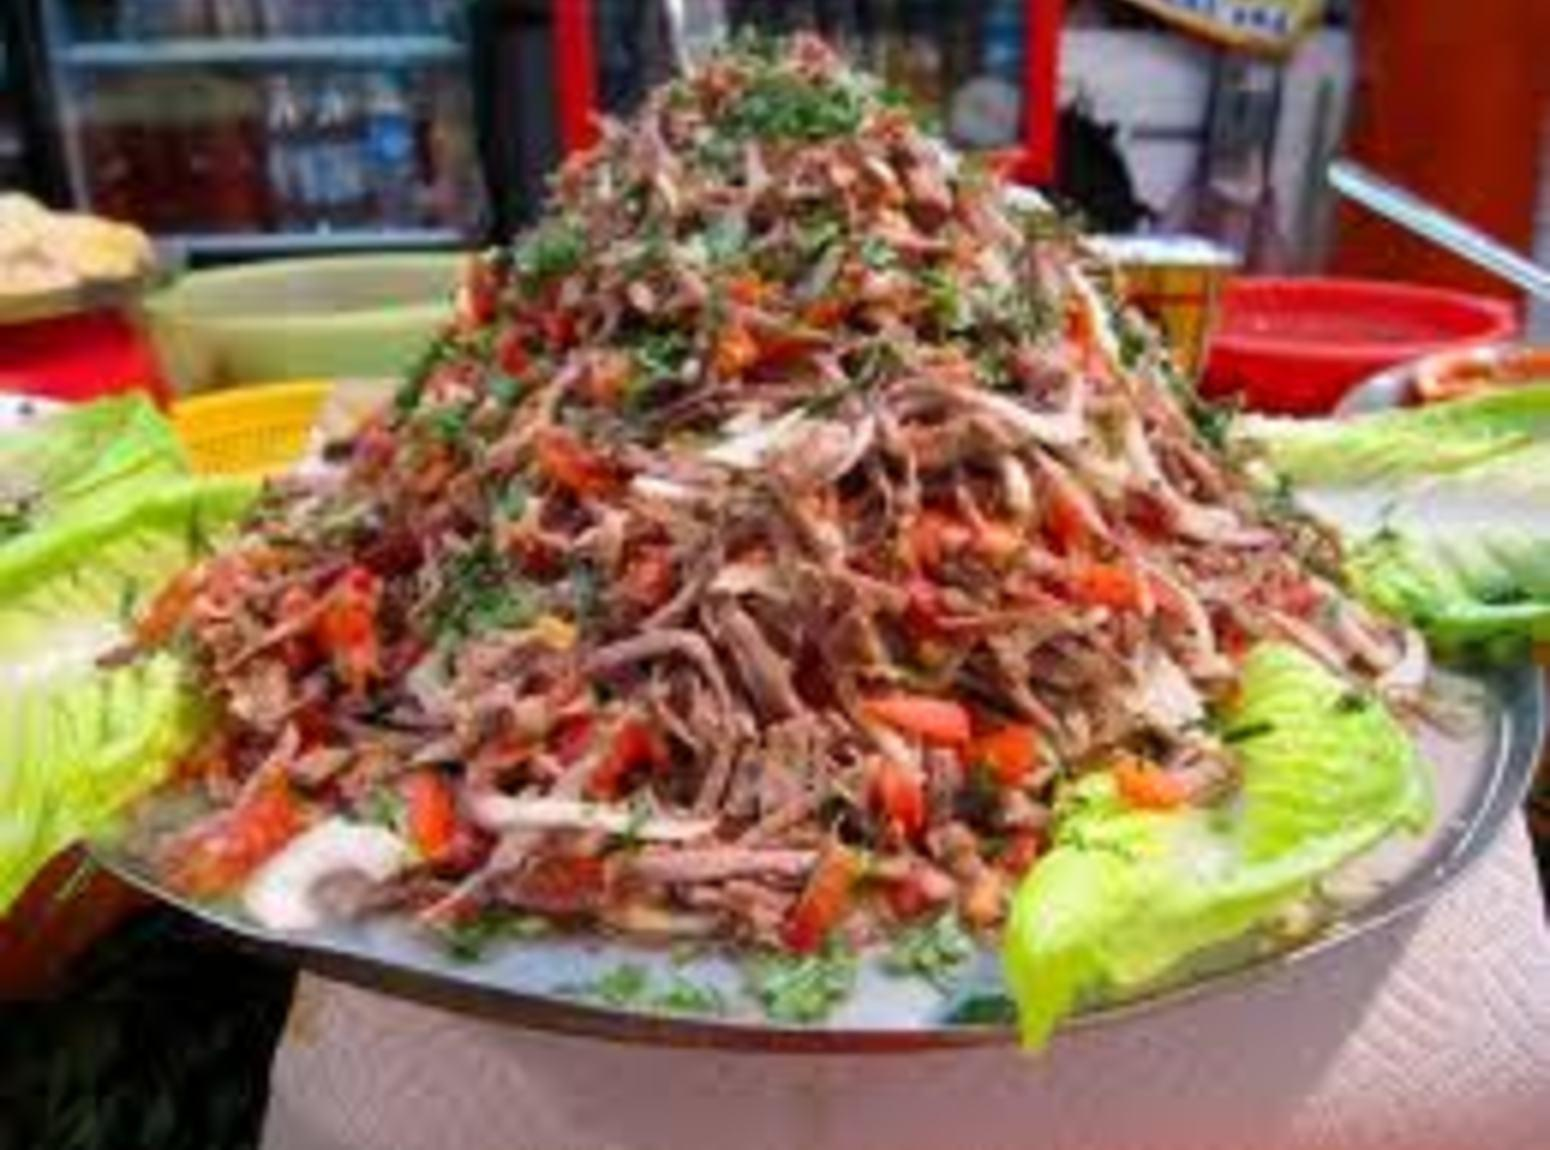 Salpicon de Res Recipe Shredded Beef Salad | Just A Pinch Recipes